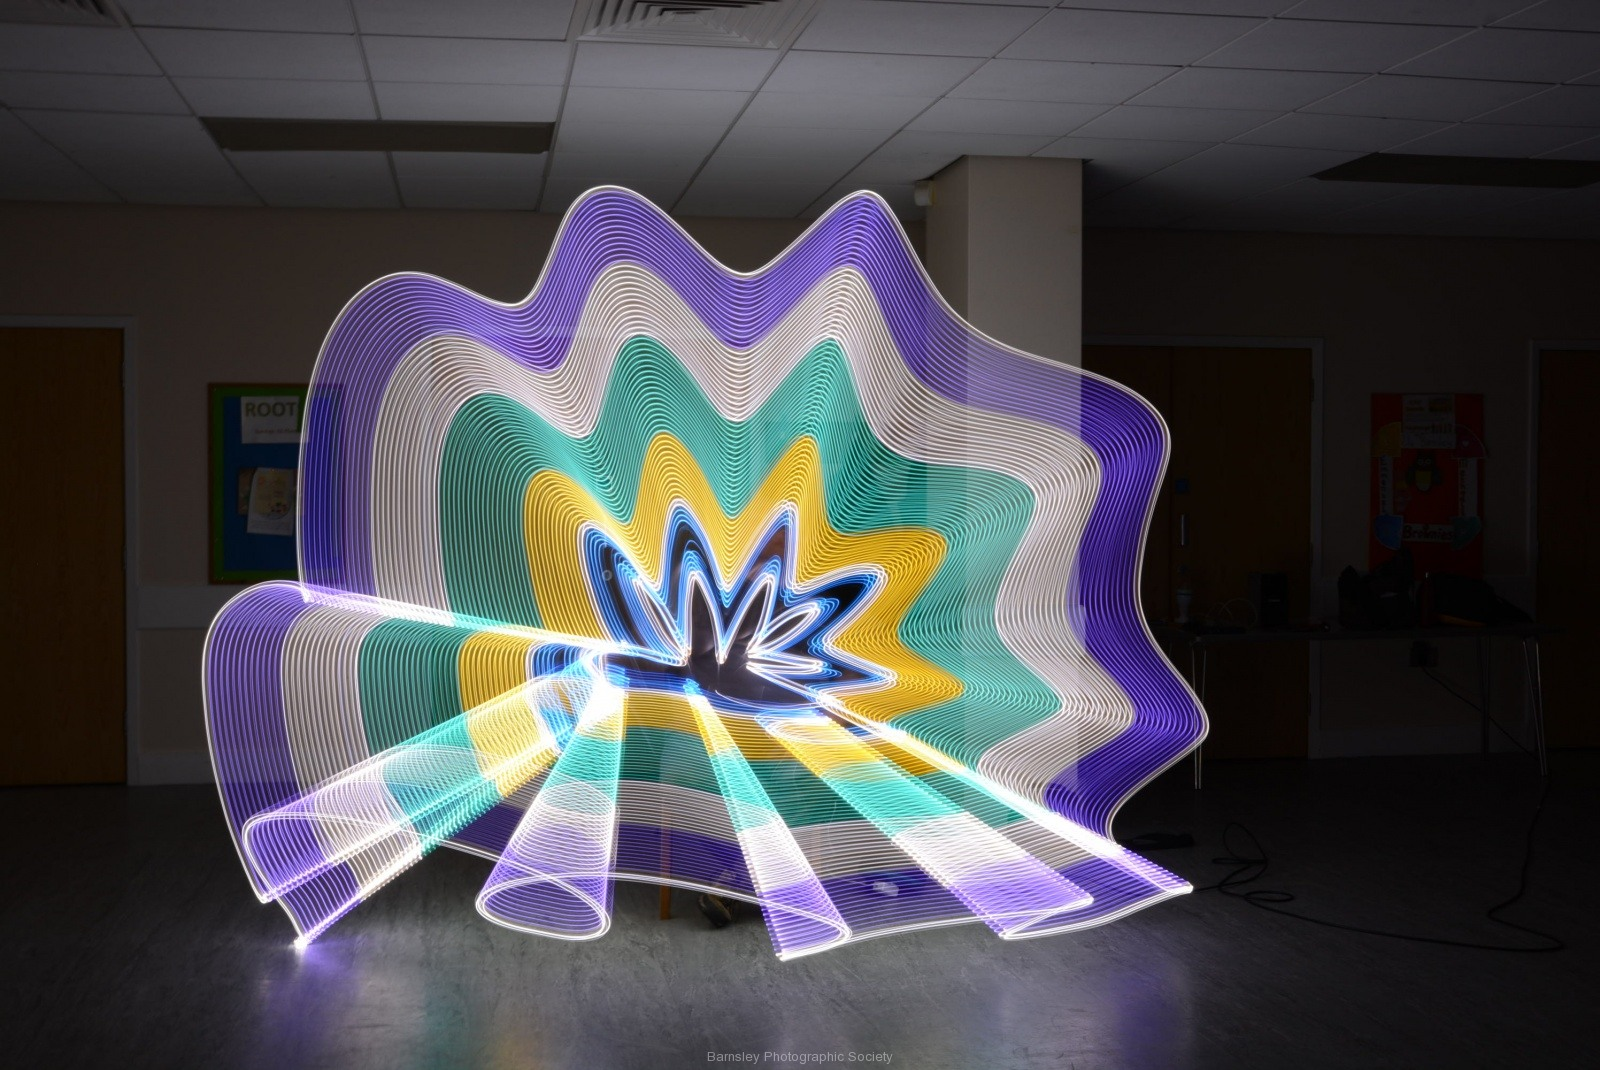 Painting in Light II  by  Dave Rippon  8